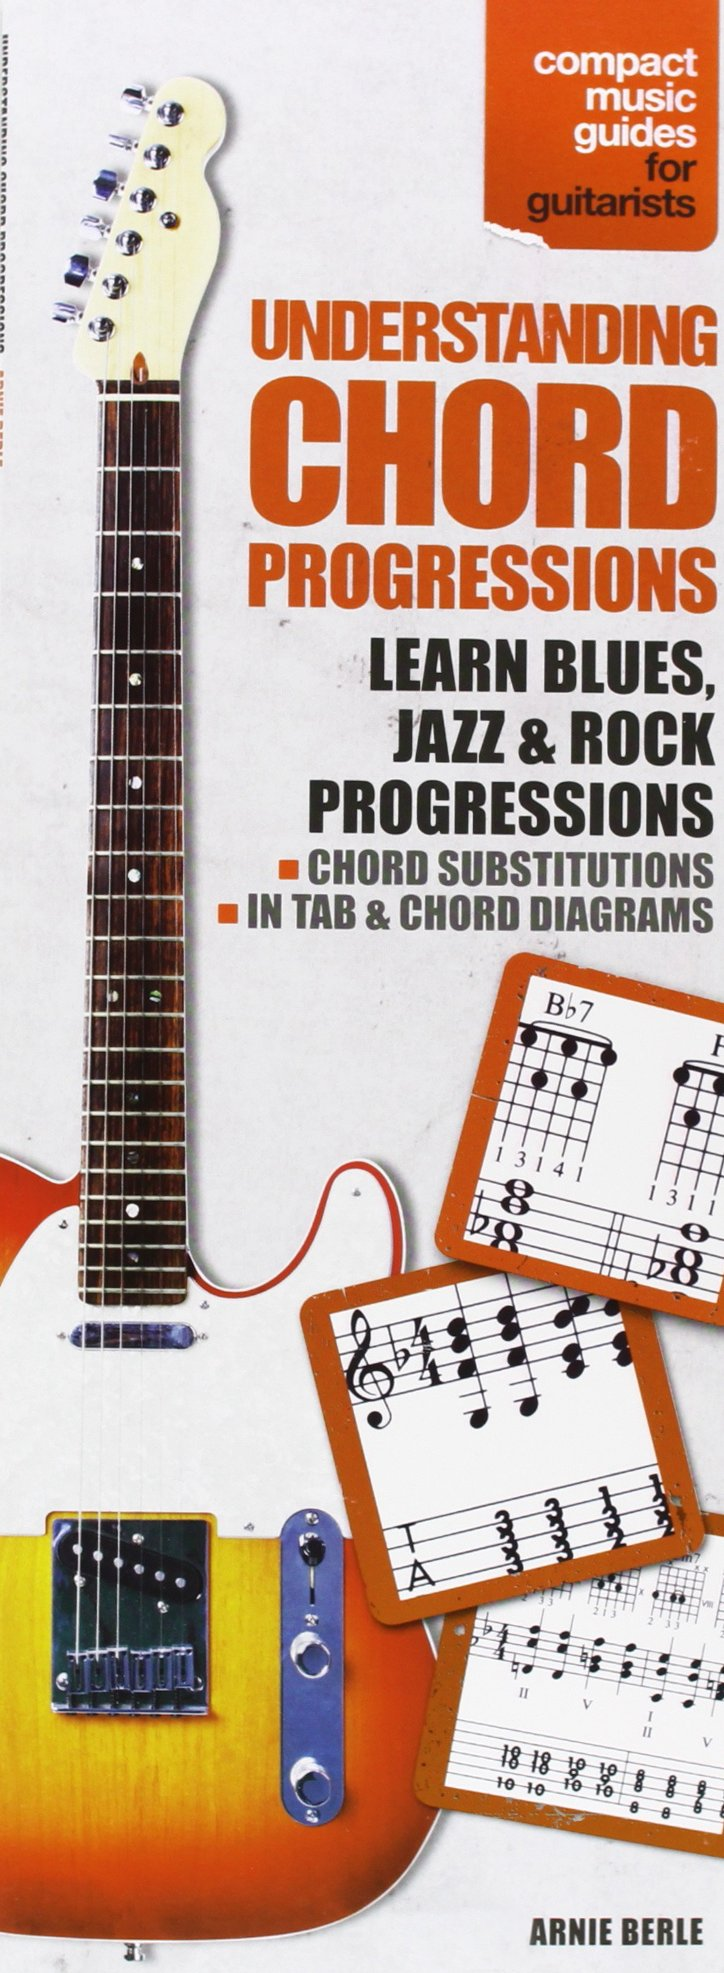 Amazon.com: Understanding Chord Progressions for Guitar: Compact ...